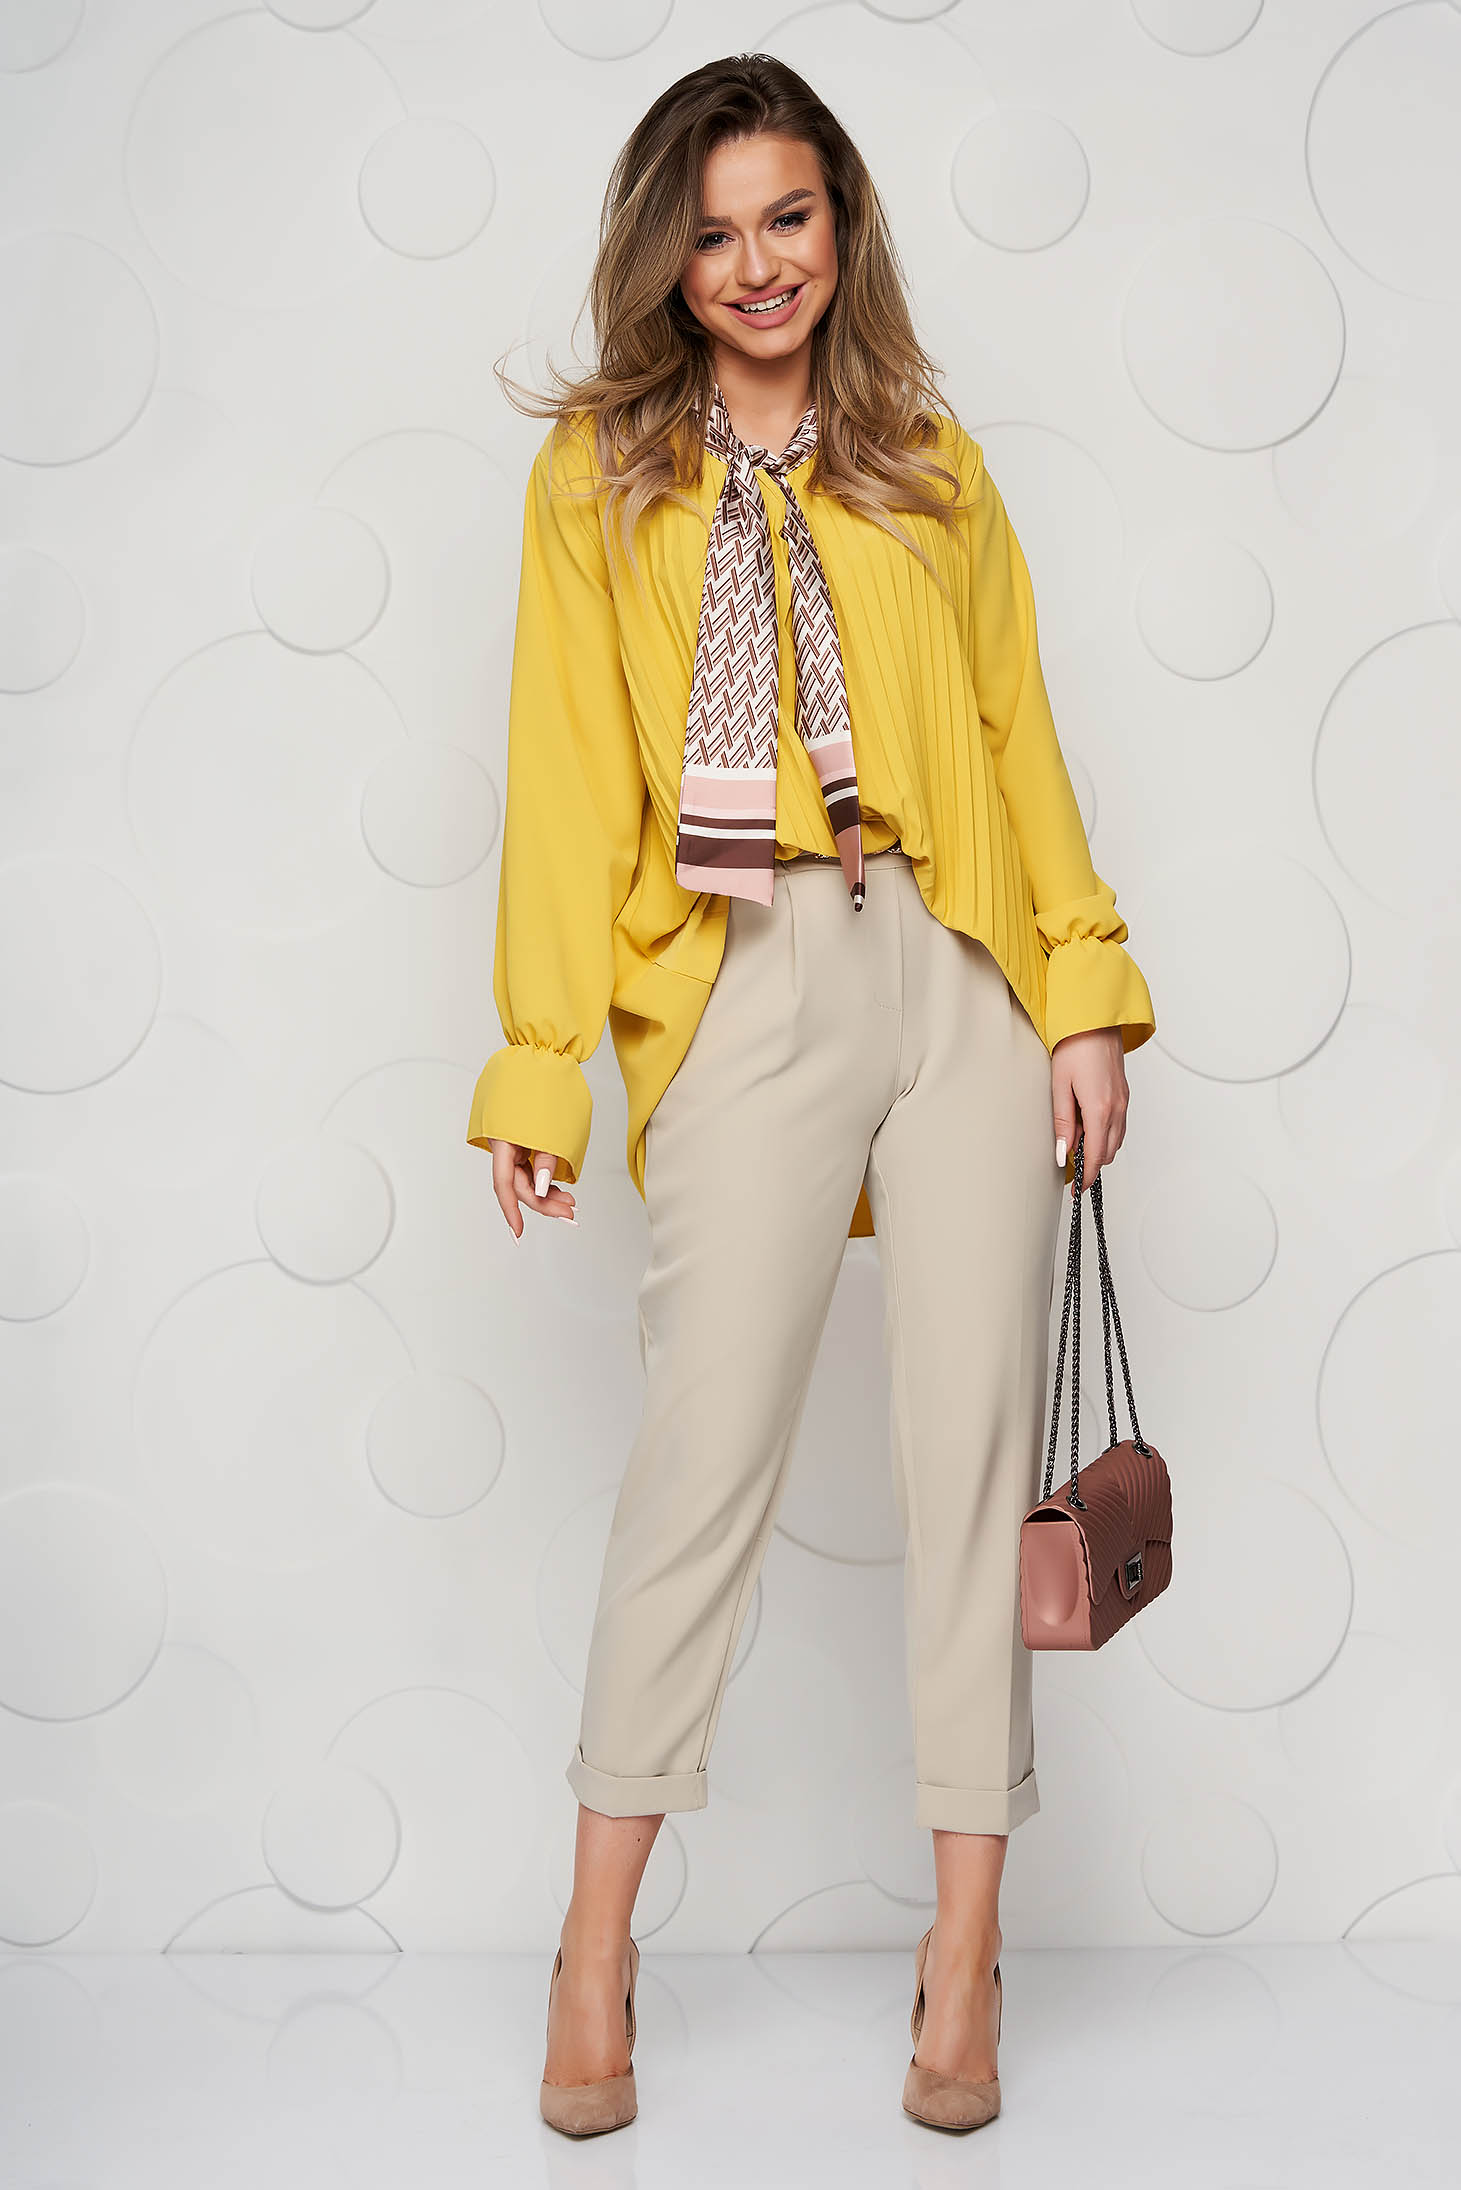 Women`s blouse yellow office loose fit folded up